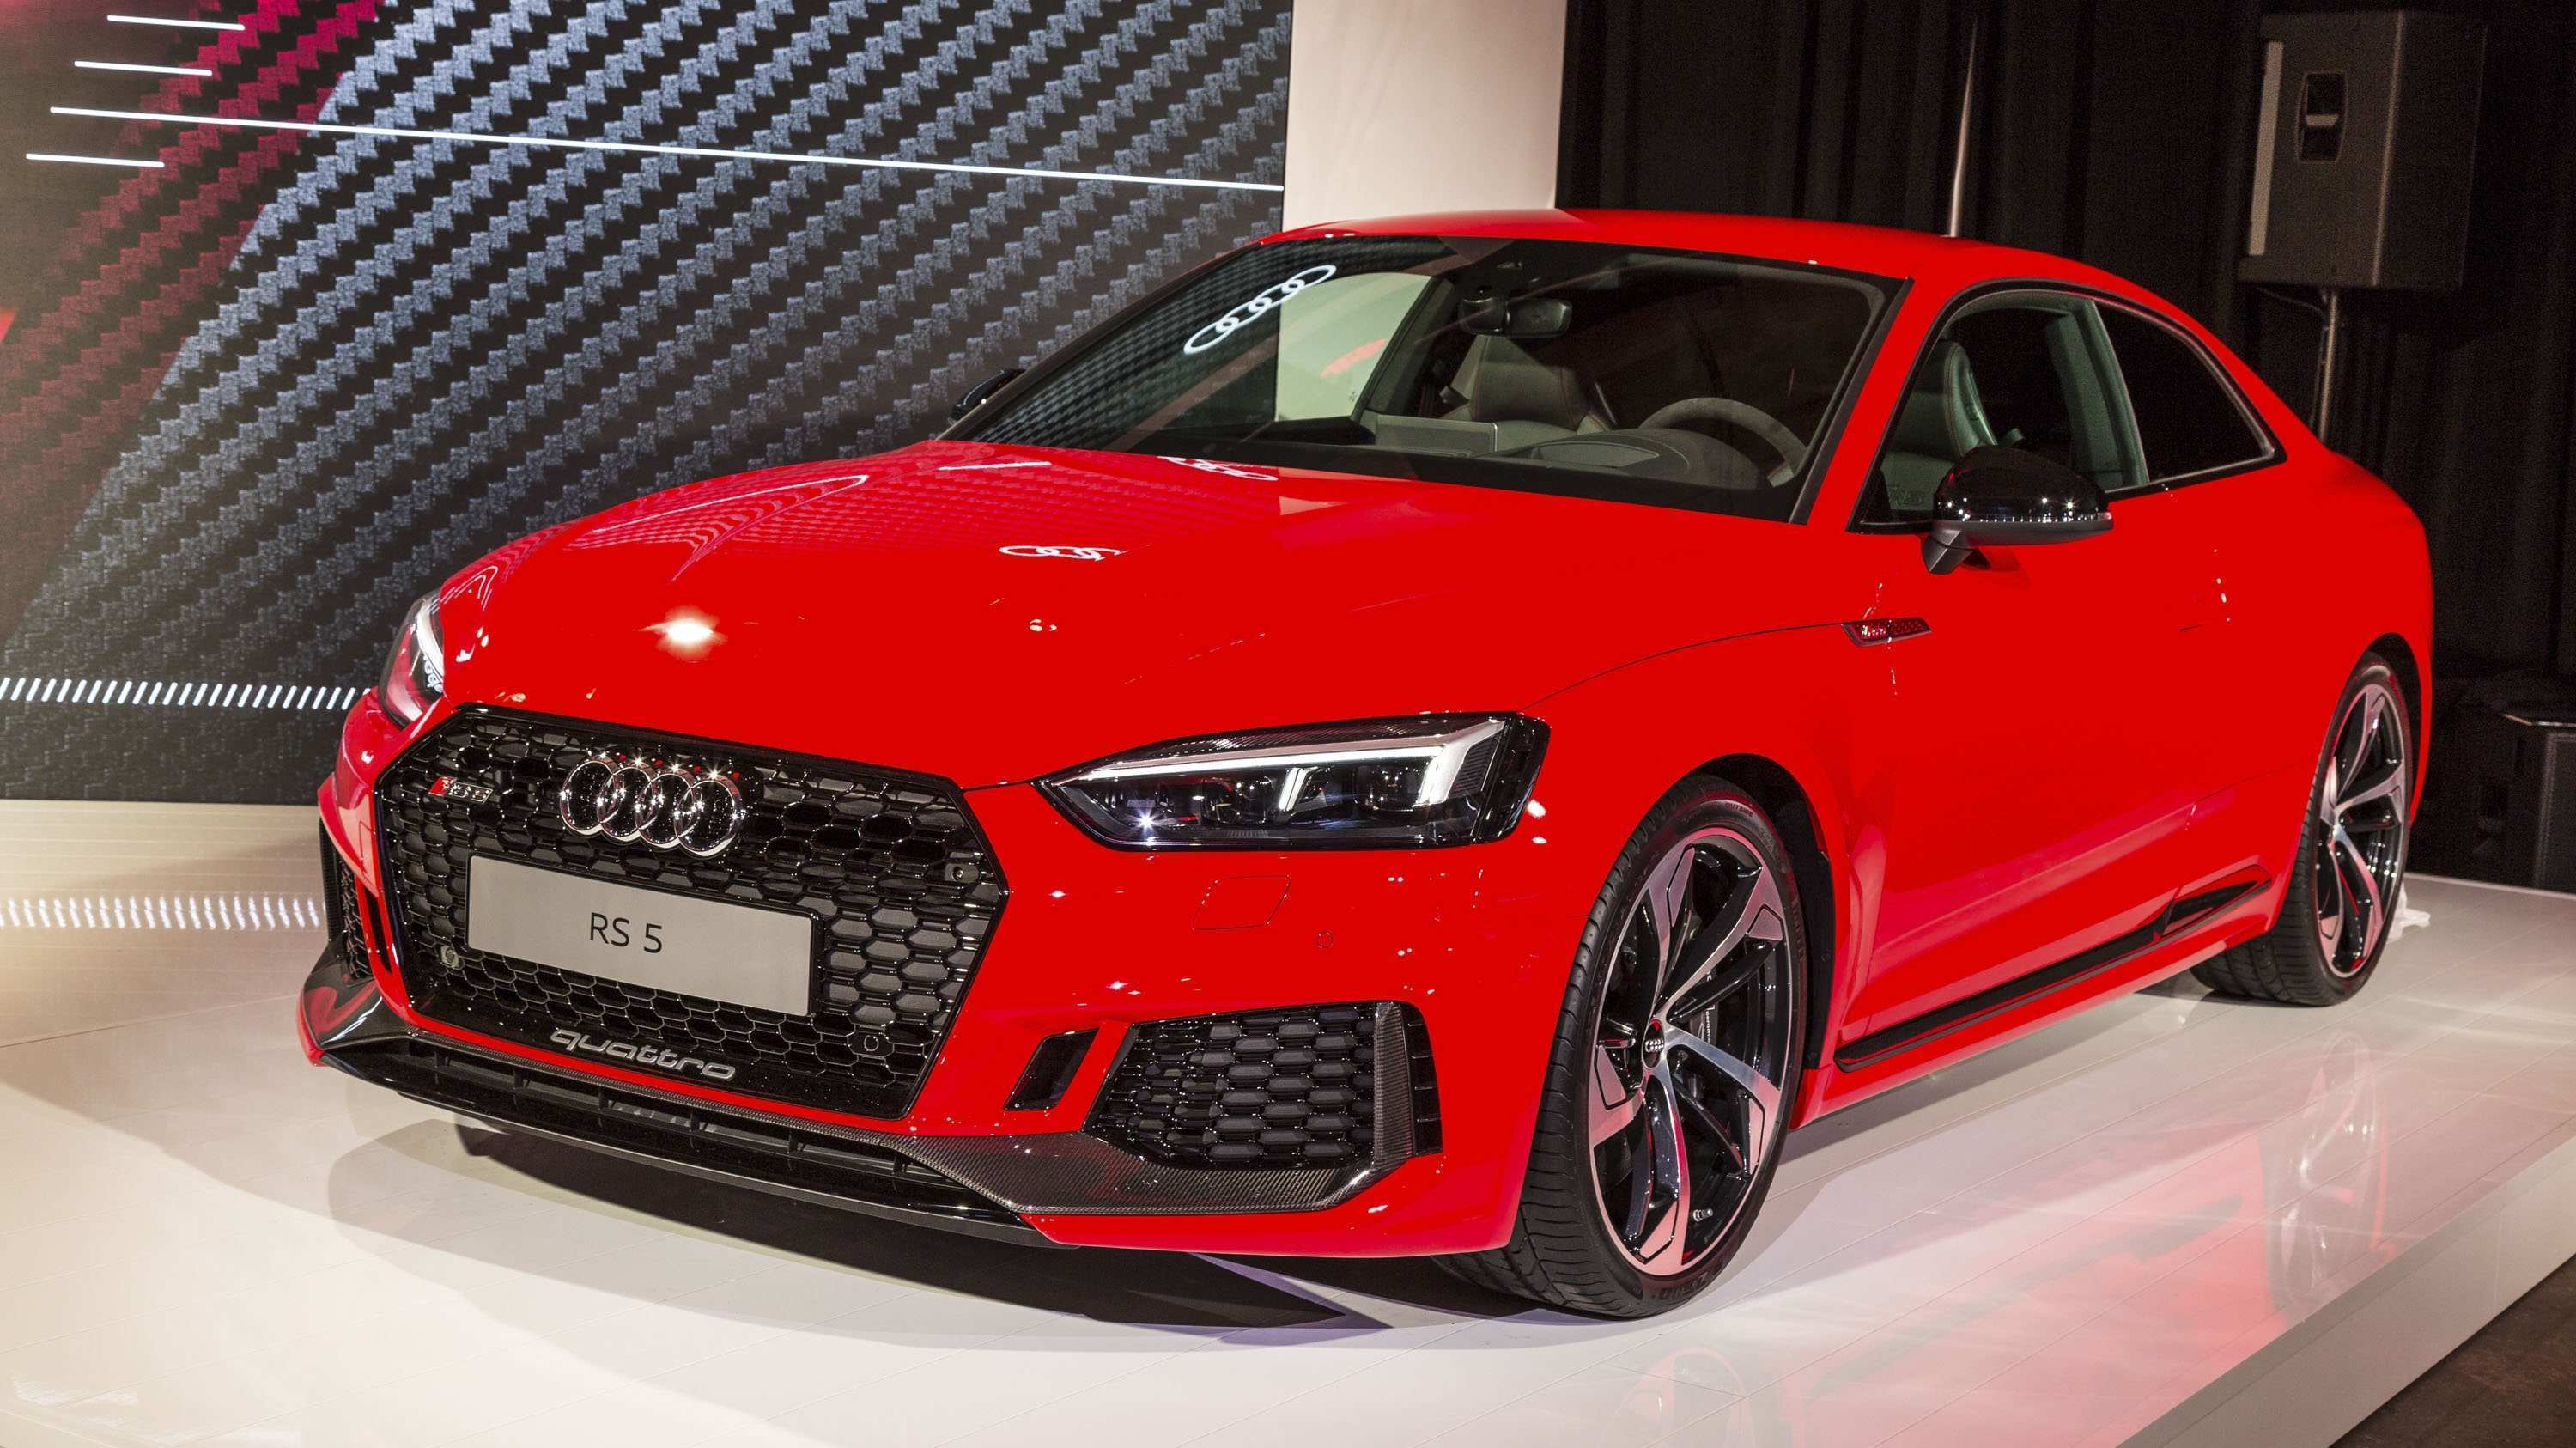 19 All New 2020 Audi Rs5 Tdi Pricing